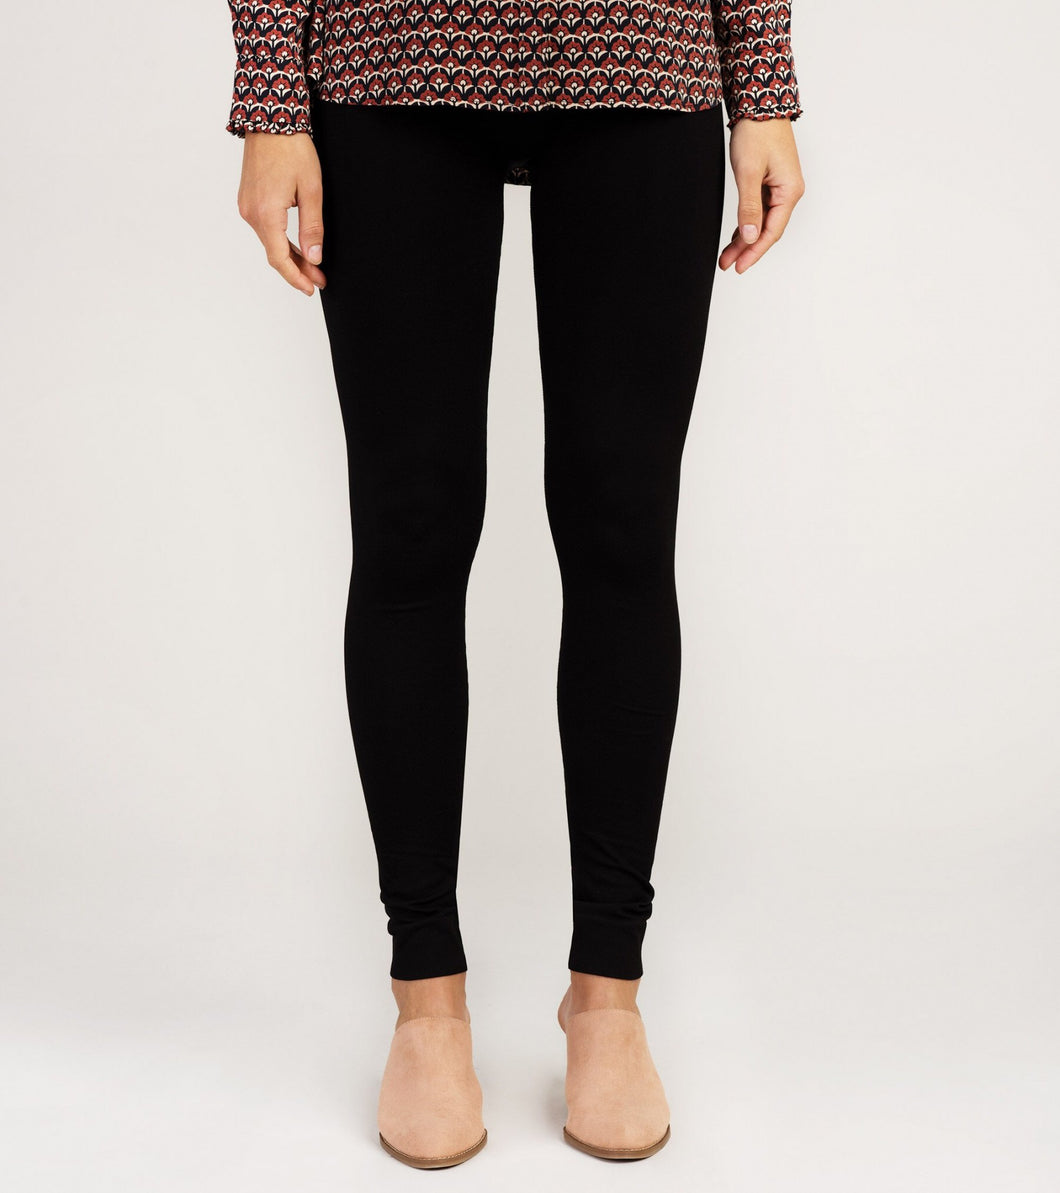 Hatley Black Seamless Leggings - Sands Boutique clothing and gifts